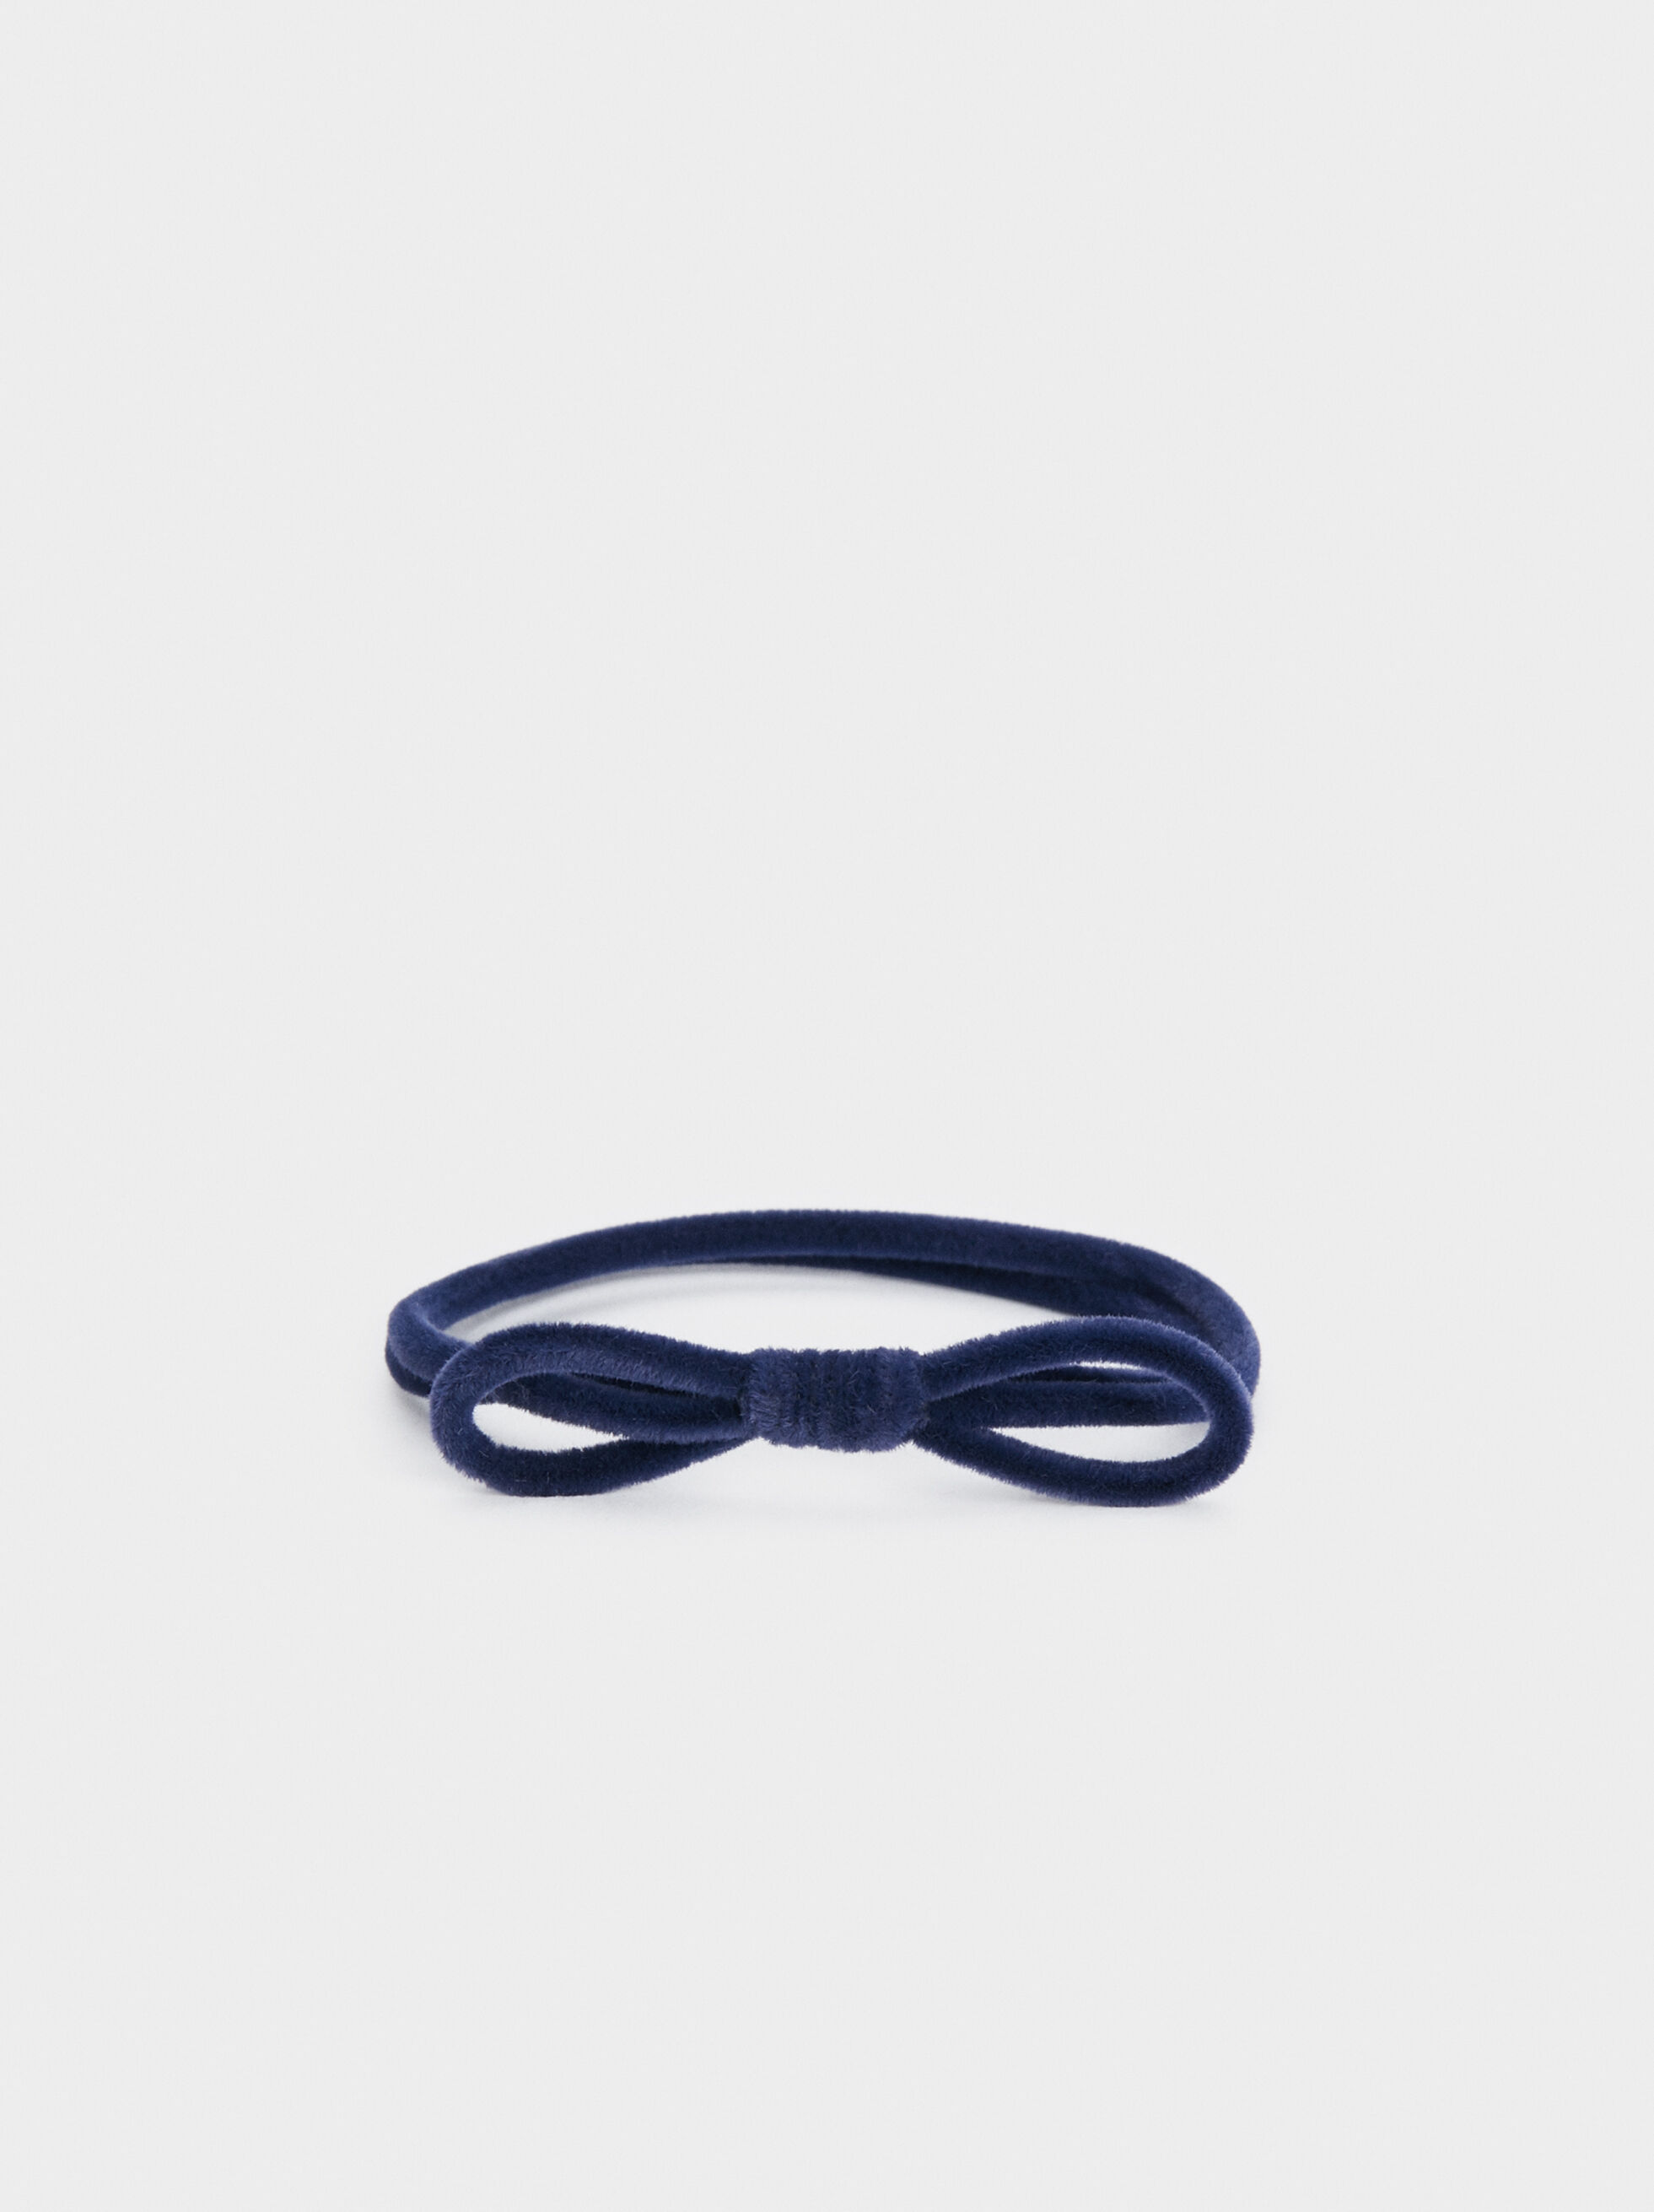 Velvet Hair Tie, Navy, hi-res